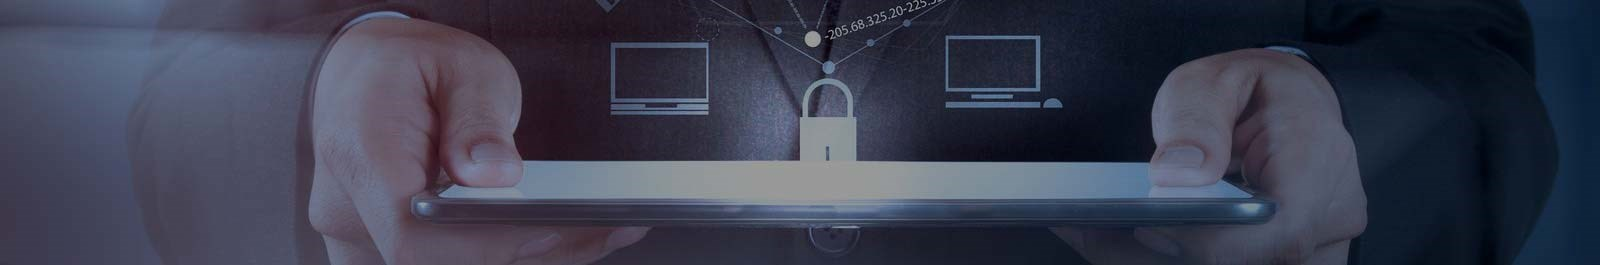 Header image - closeup of hands holding tablet device superimposed with lock